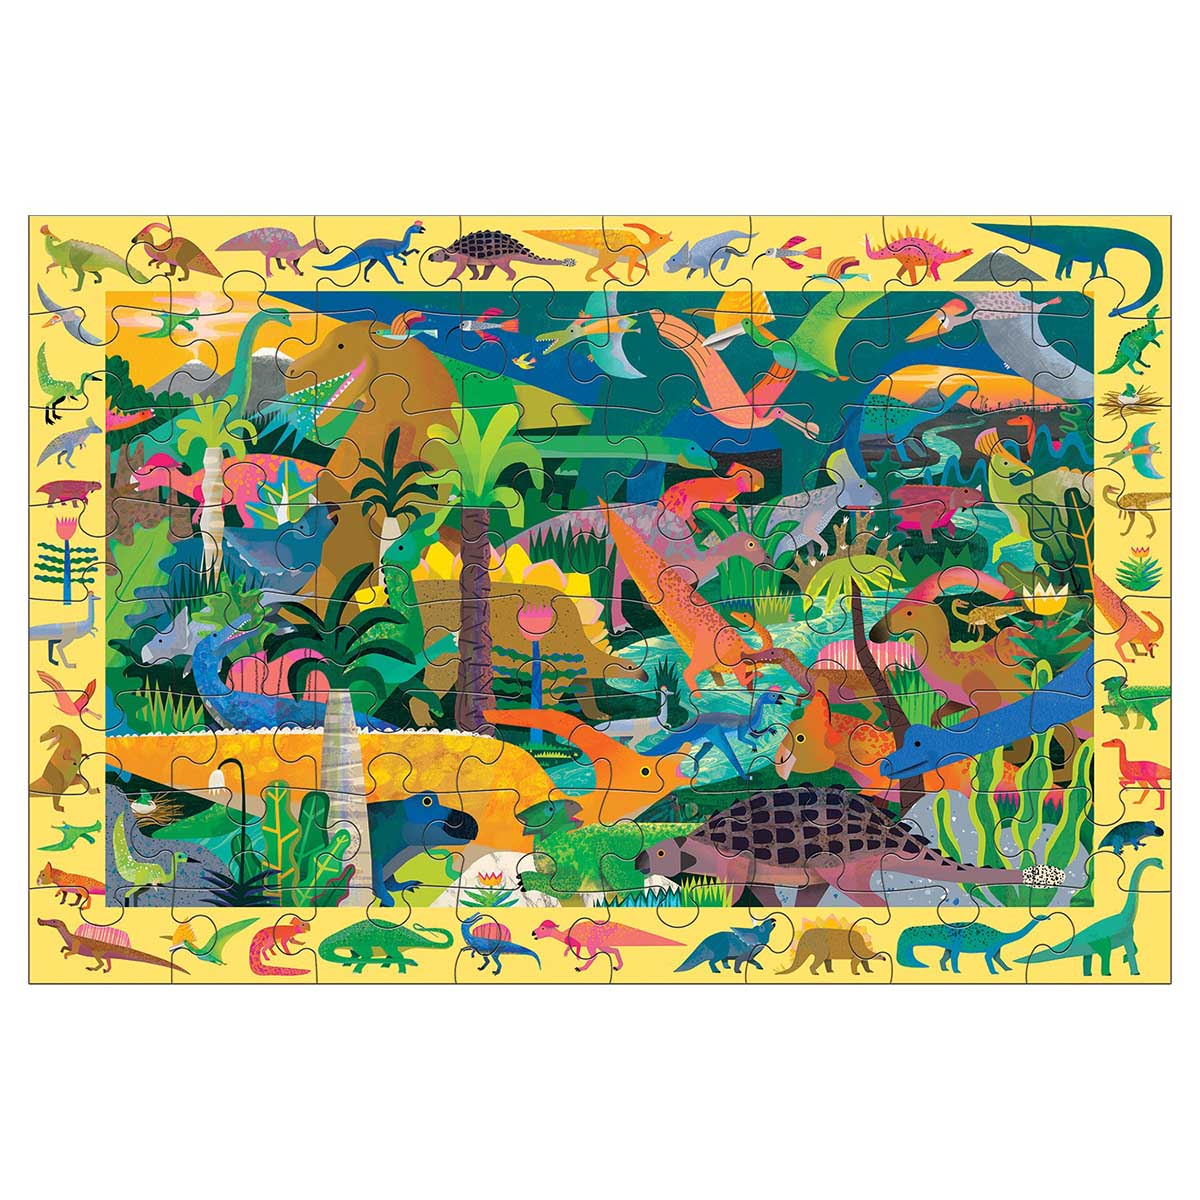 Dinosaurs Search & Find Dinosaurs Jigsaw Puzzle